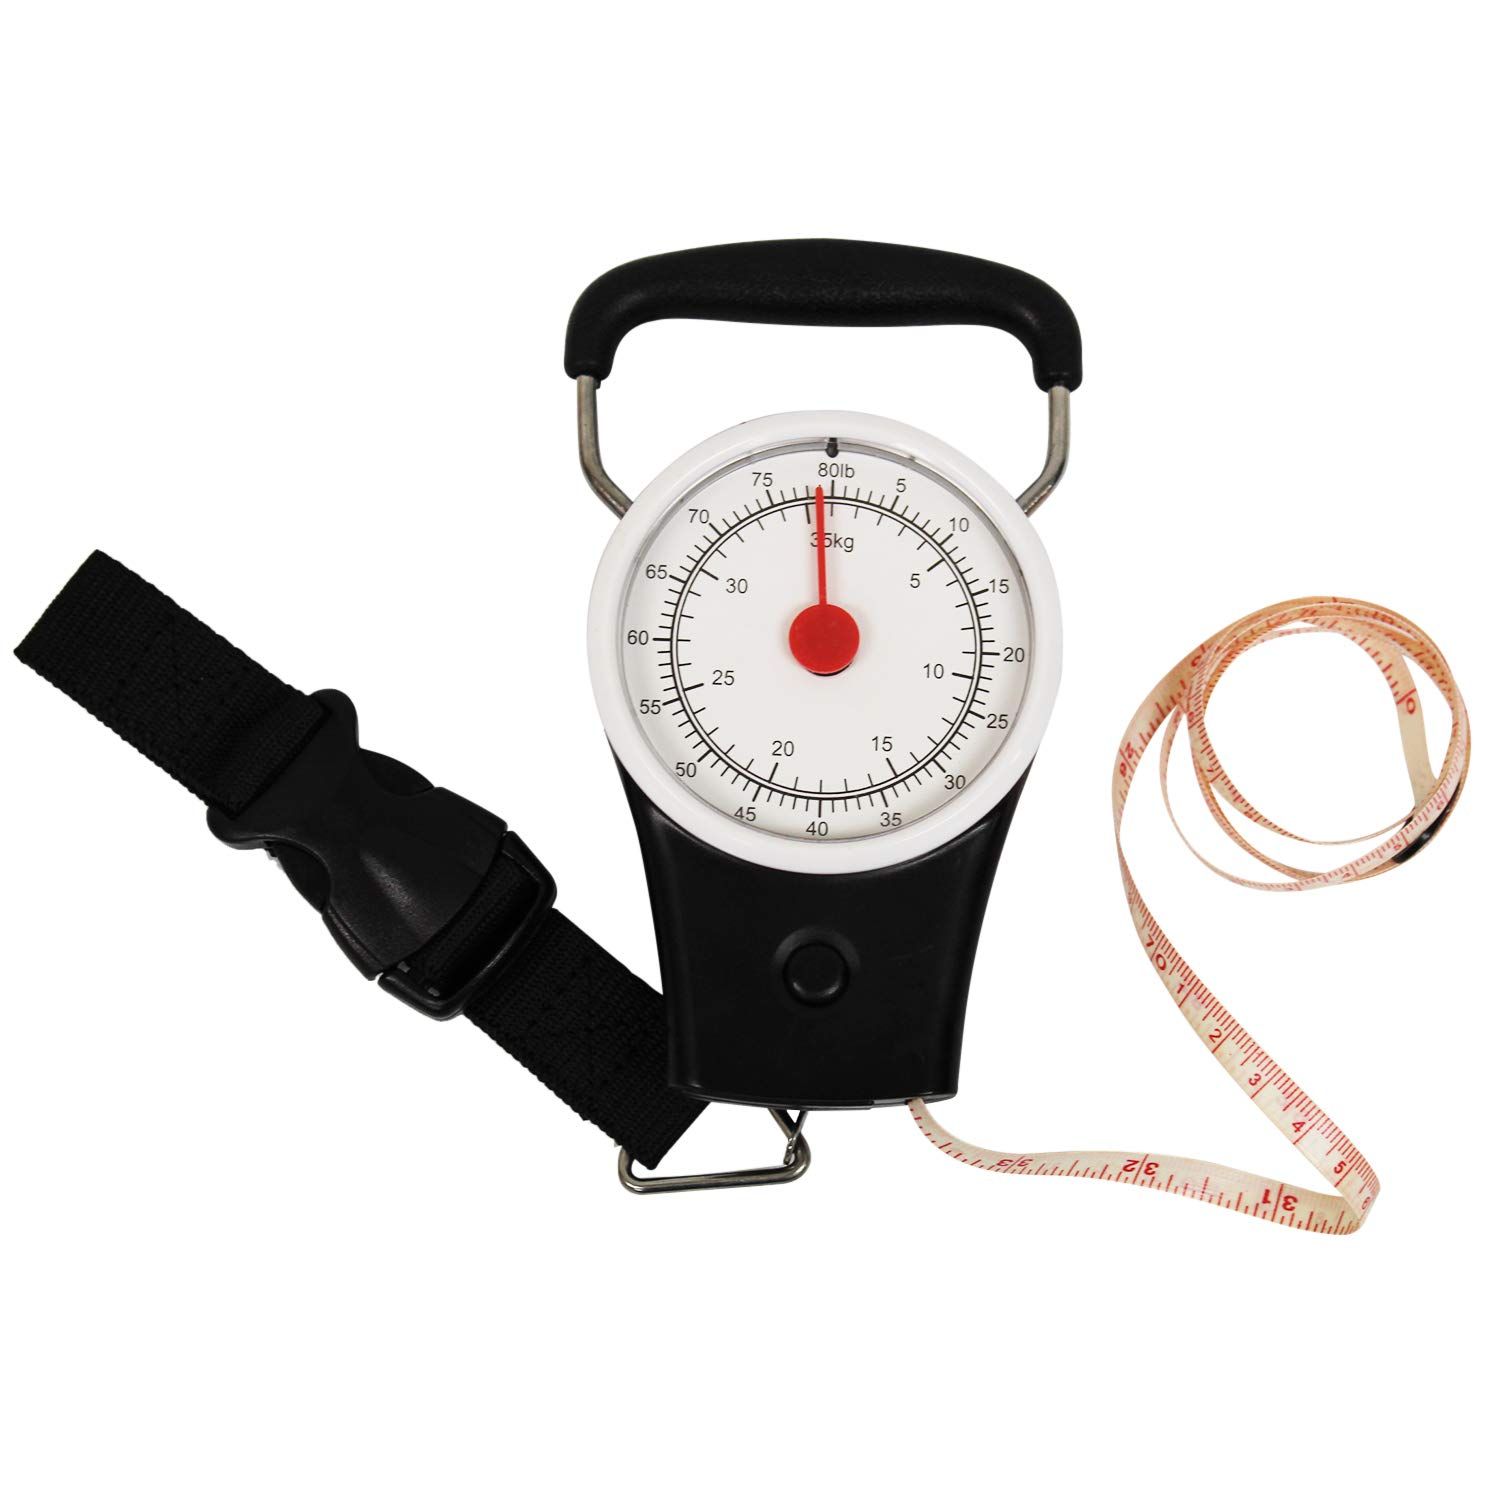 Heavy Duty Luggage Scale Accurate Easy Reading No Batteries with a Built-in Tape Measure